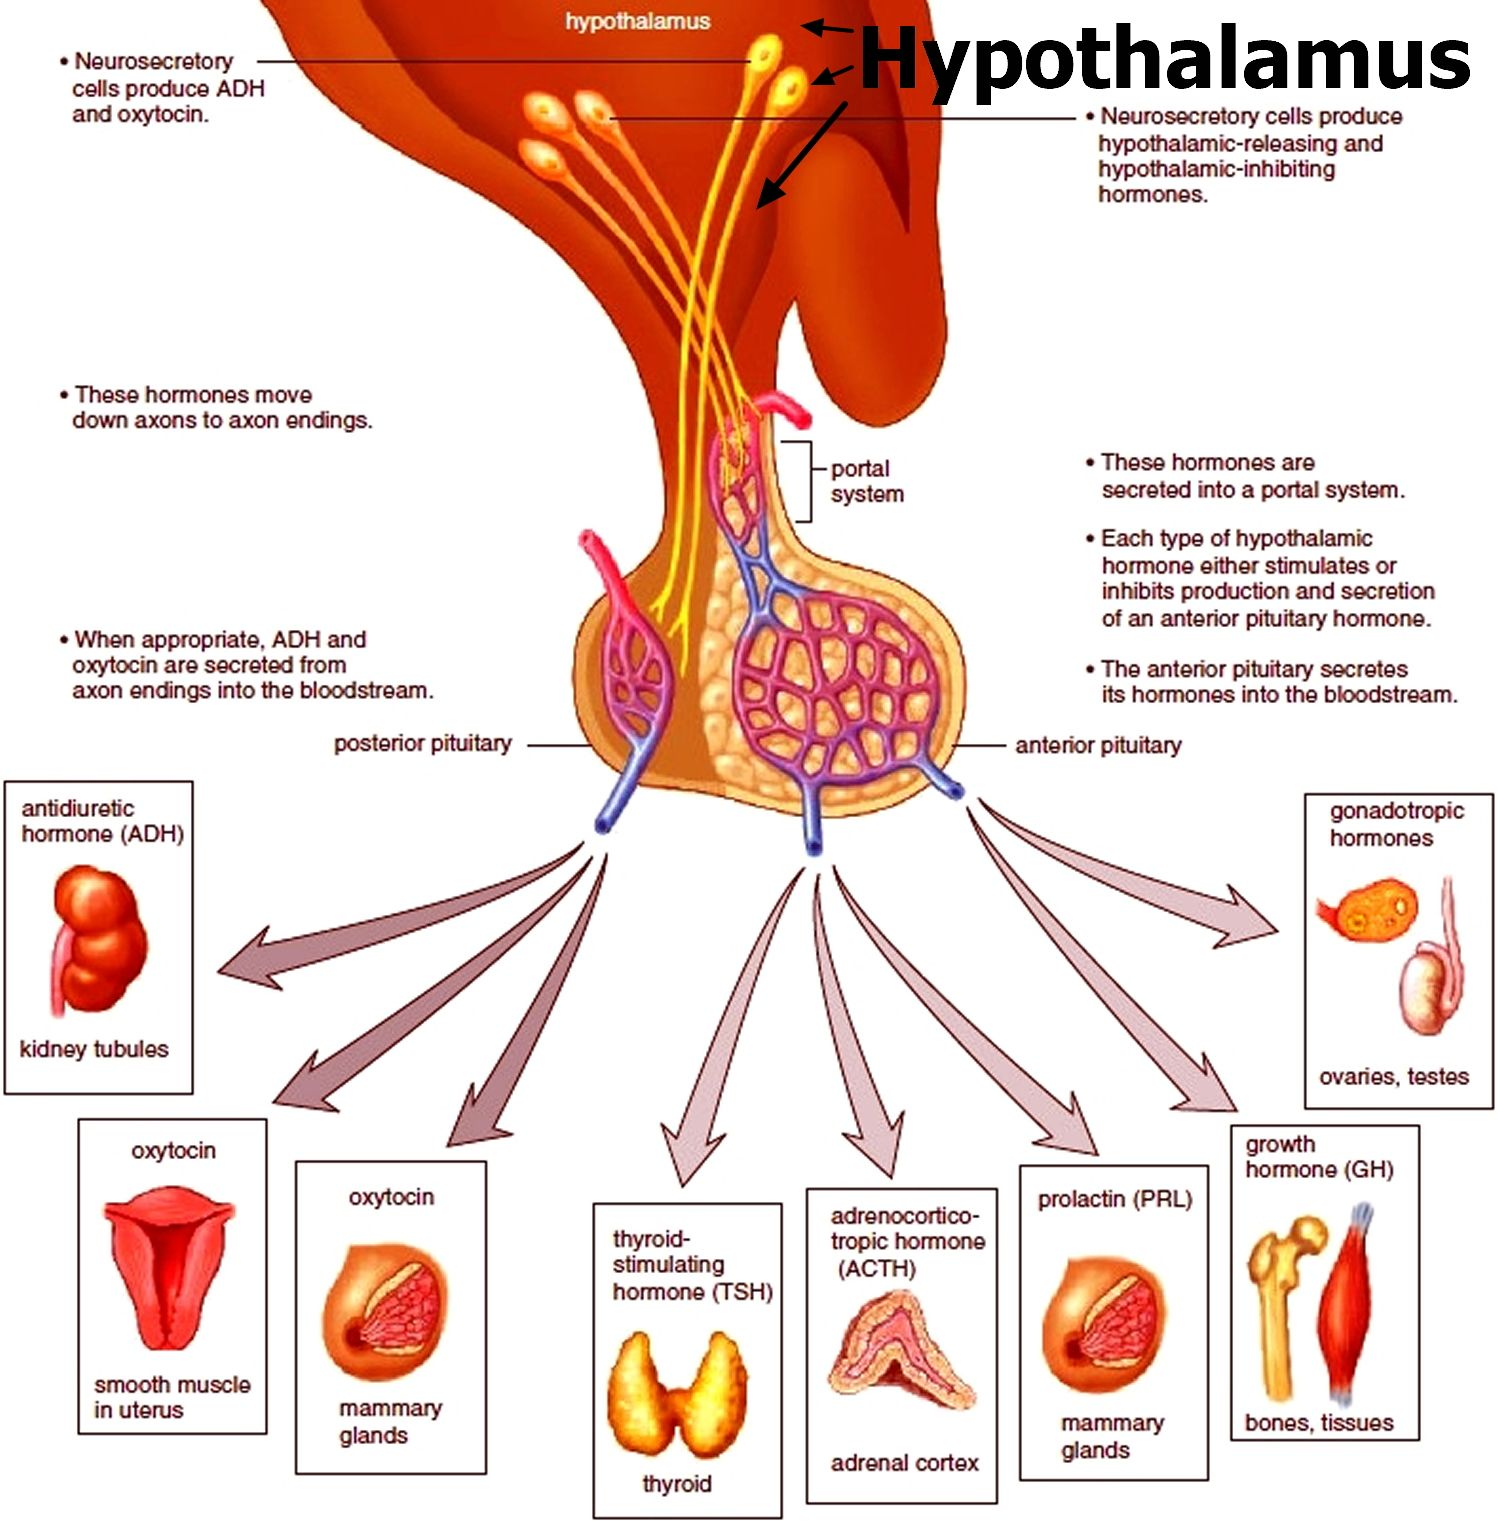 Pin by Gabriela Catalan on School Notes | Endocrine system ...